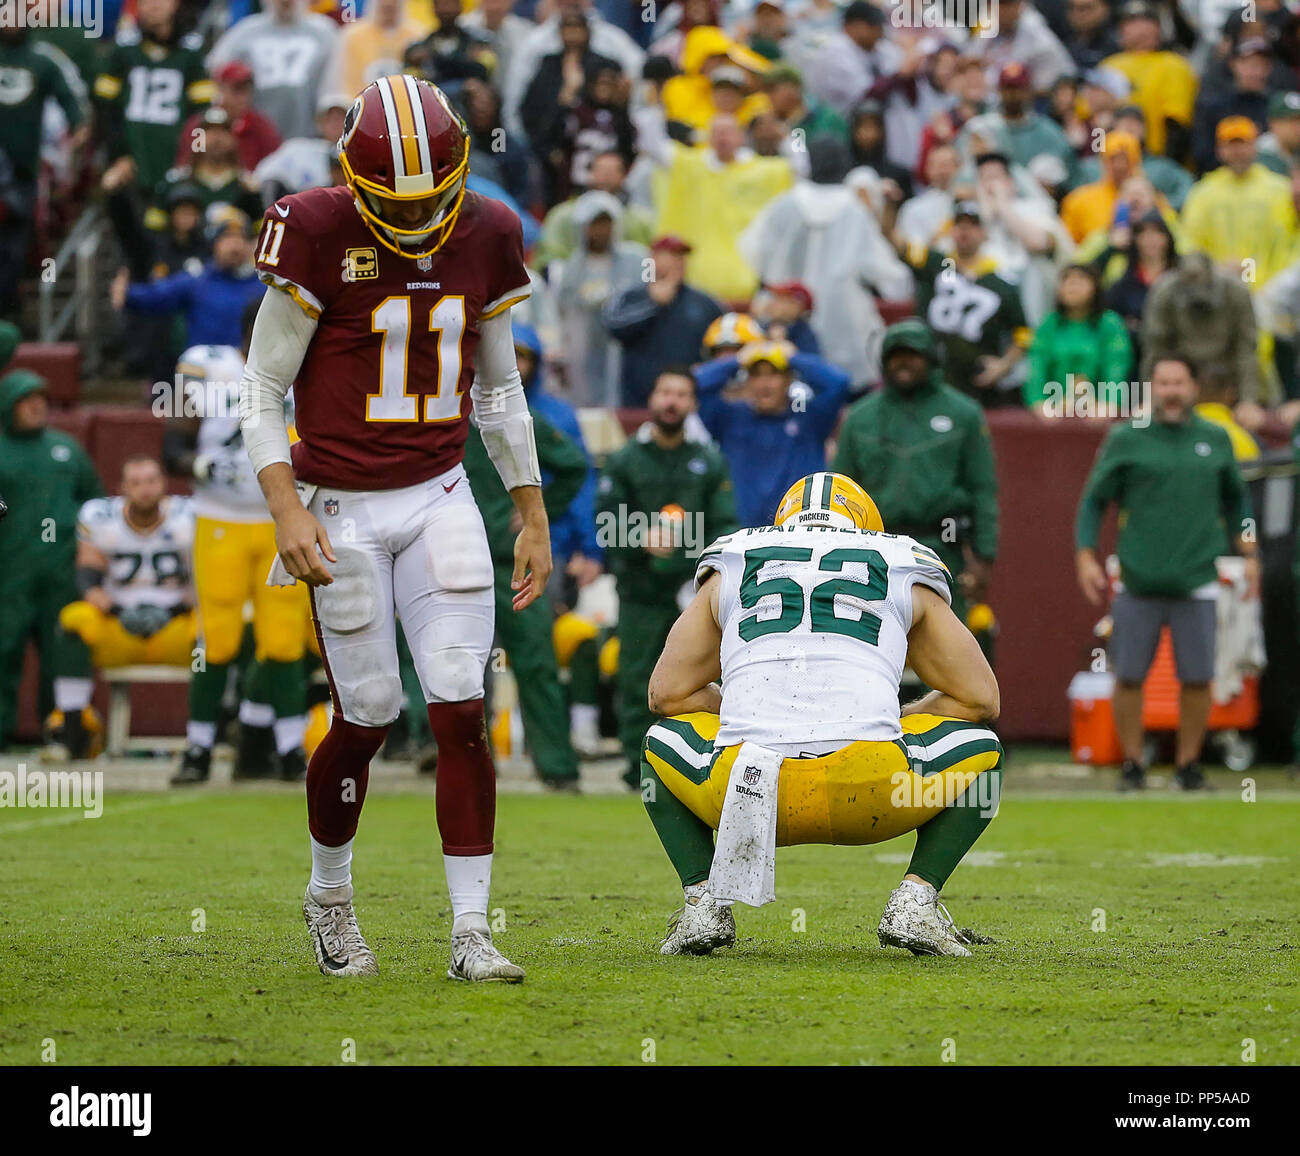 Landover, MD, USA. 23rd Sep, 2018. Green Bay Packers LB #52 Clay Matthews is called for roughing the passer during this attempted sack of Washington Redskins QB #11 Alex Smith during a NFL football game between the Washington Redskins and the Green Bay Packers at FedEx Field in Landover, MD. Justin Cooper/CSM/Alamy Live News - Stock Image